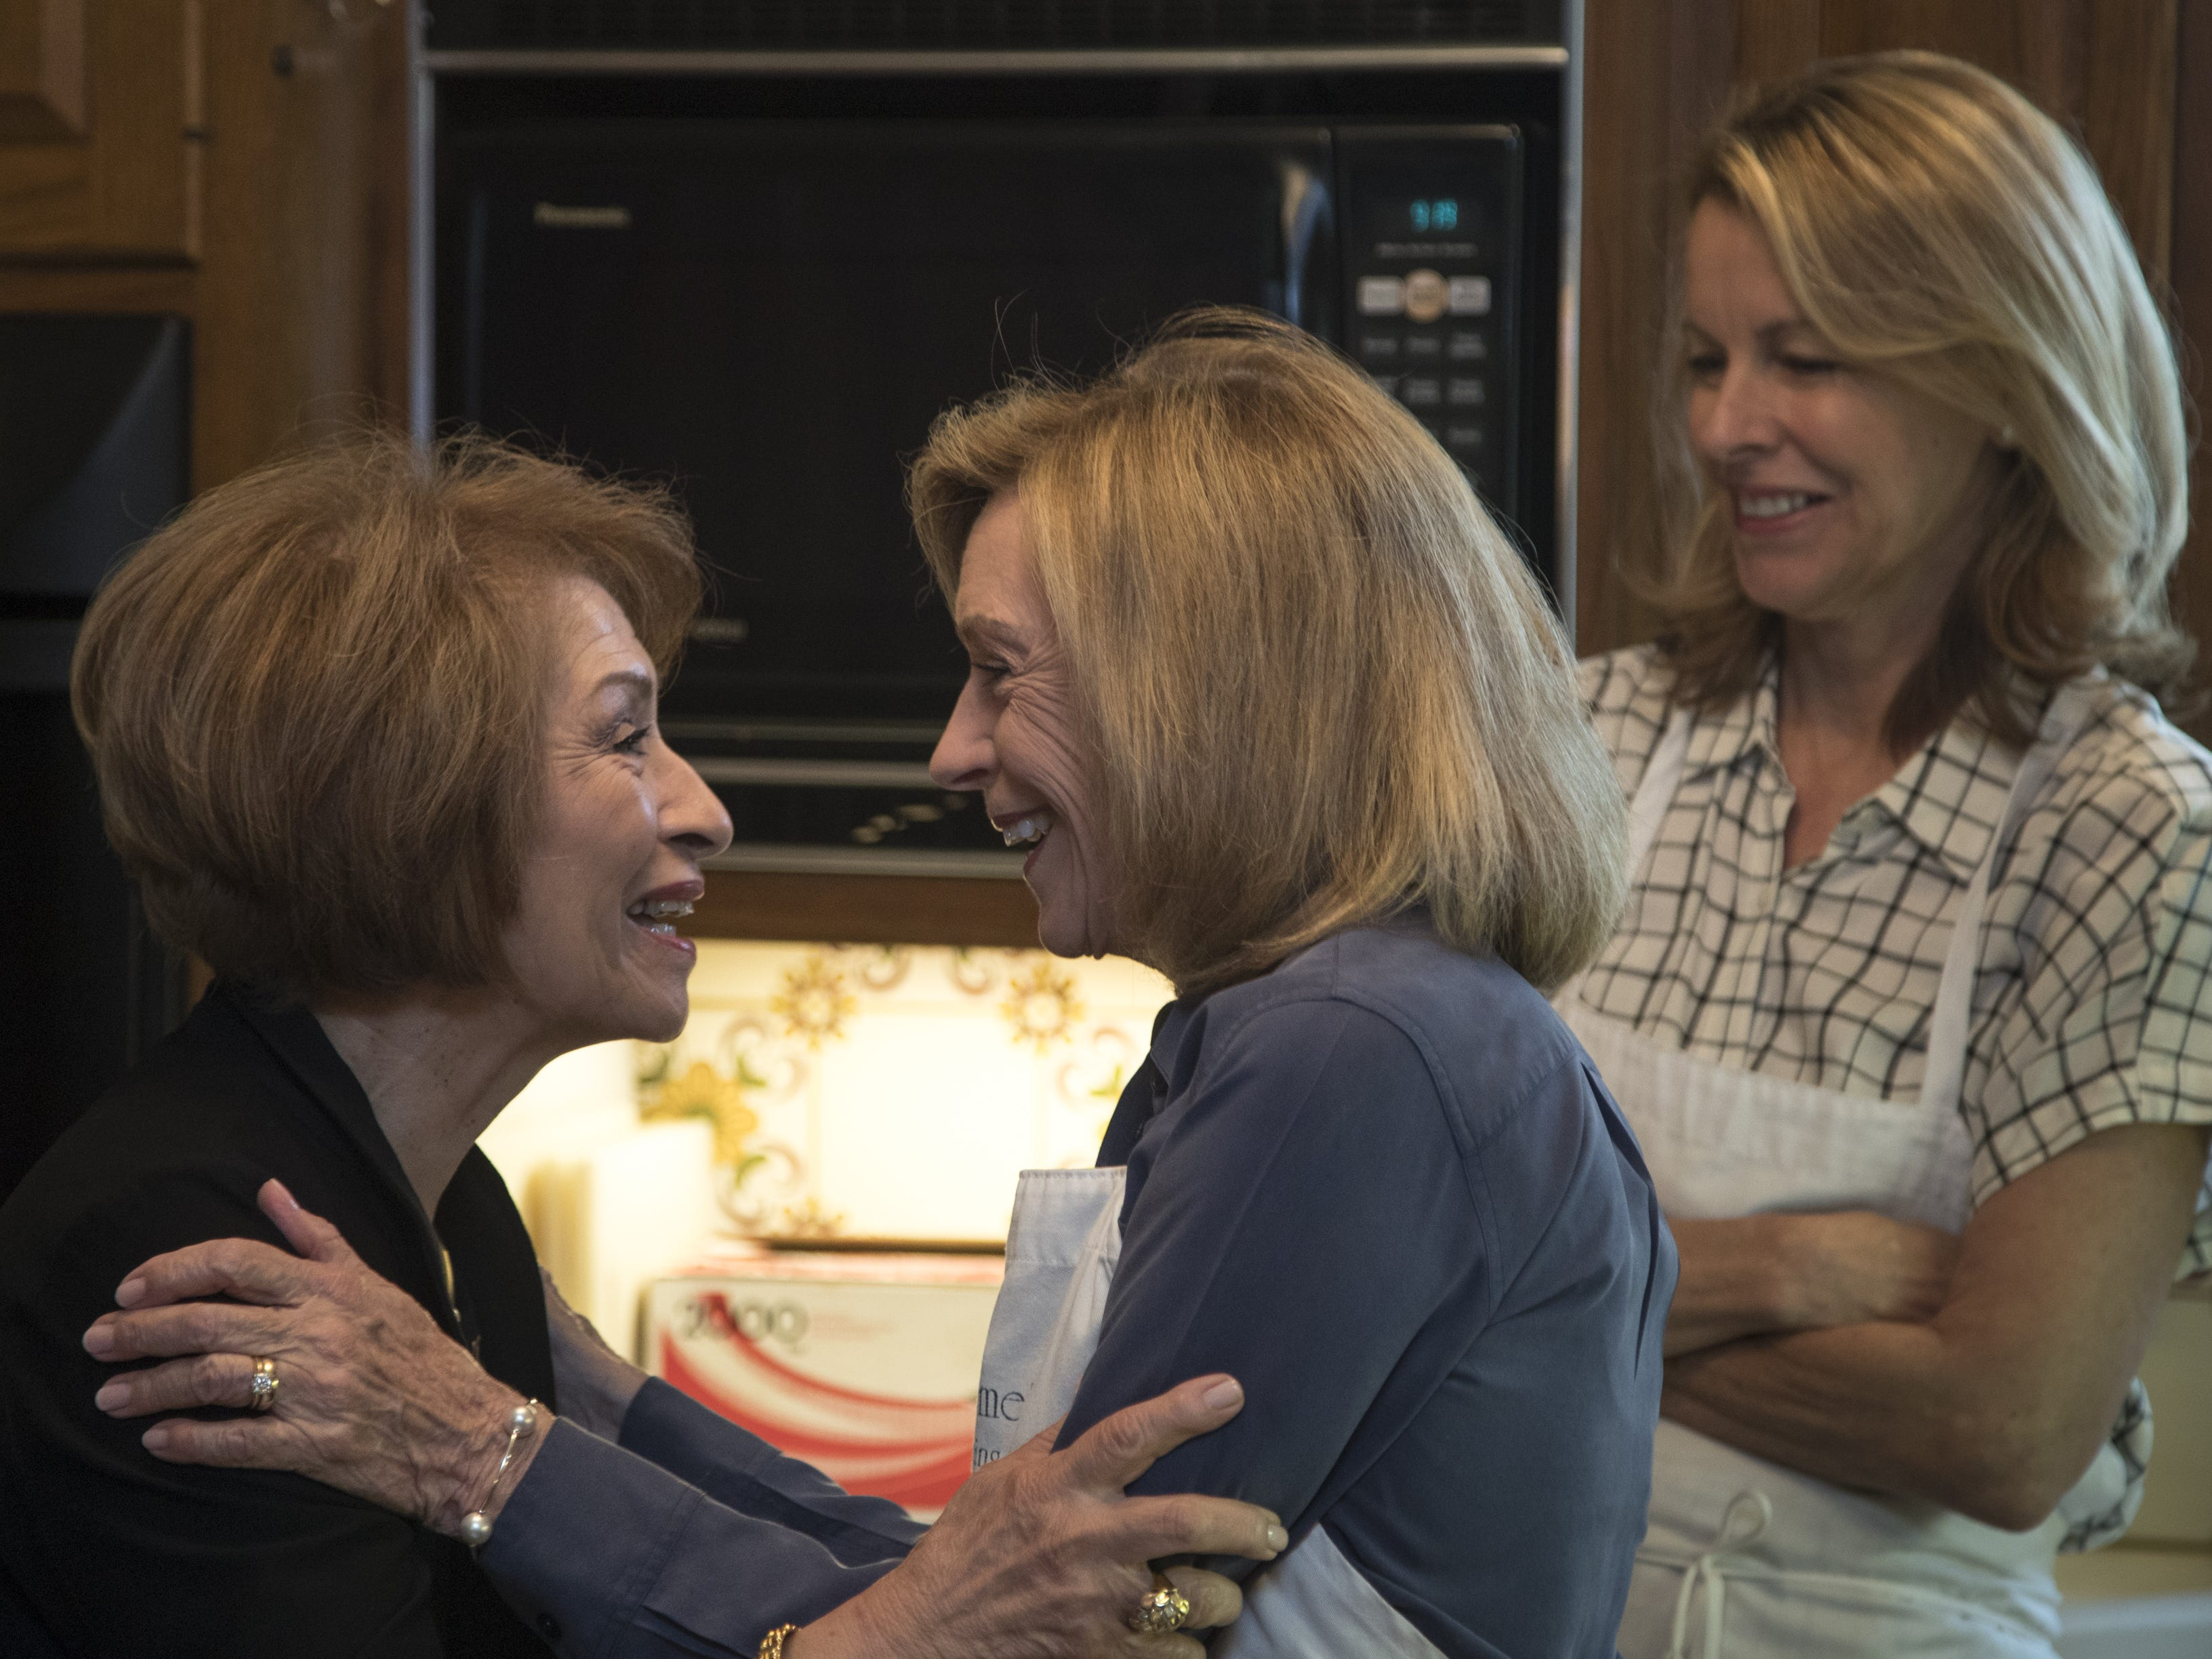 Barbara Fenzl (center) greets Nohra Kellough (left) as she arrives for a cooking class, May 7, 2019, at Les Gourmettes Cooking School, 6610 N. Central Ave., Phoenix. Looking on is Barbara's assistant, Kim Howard (right).